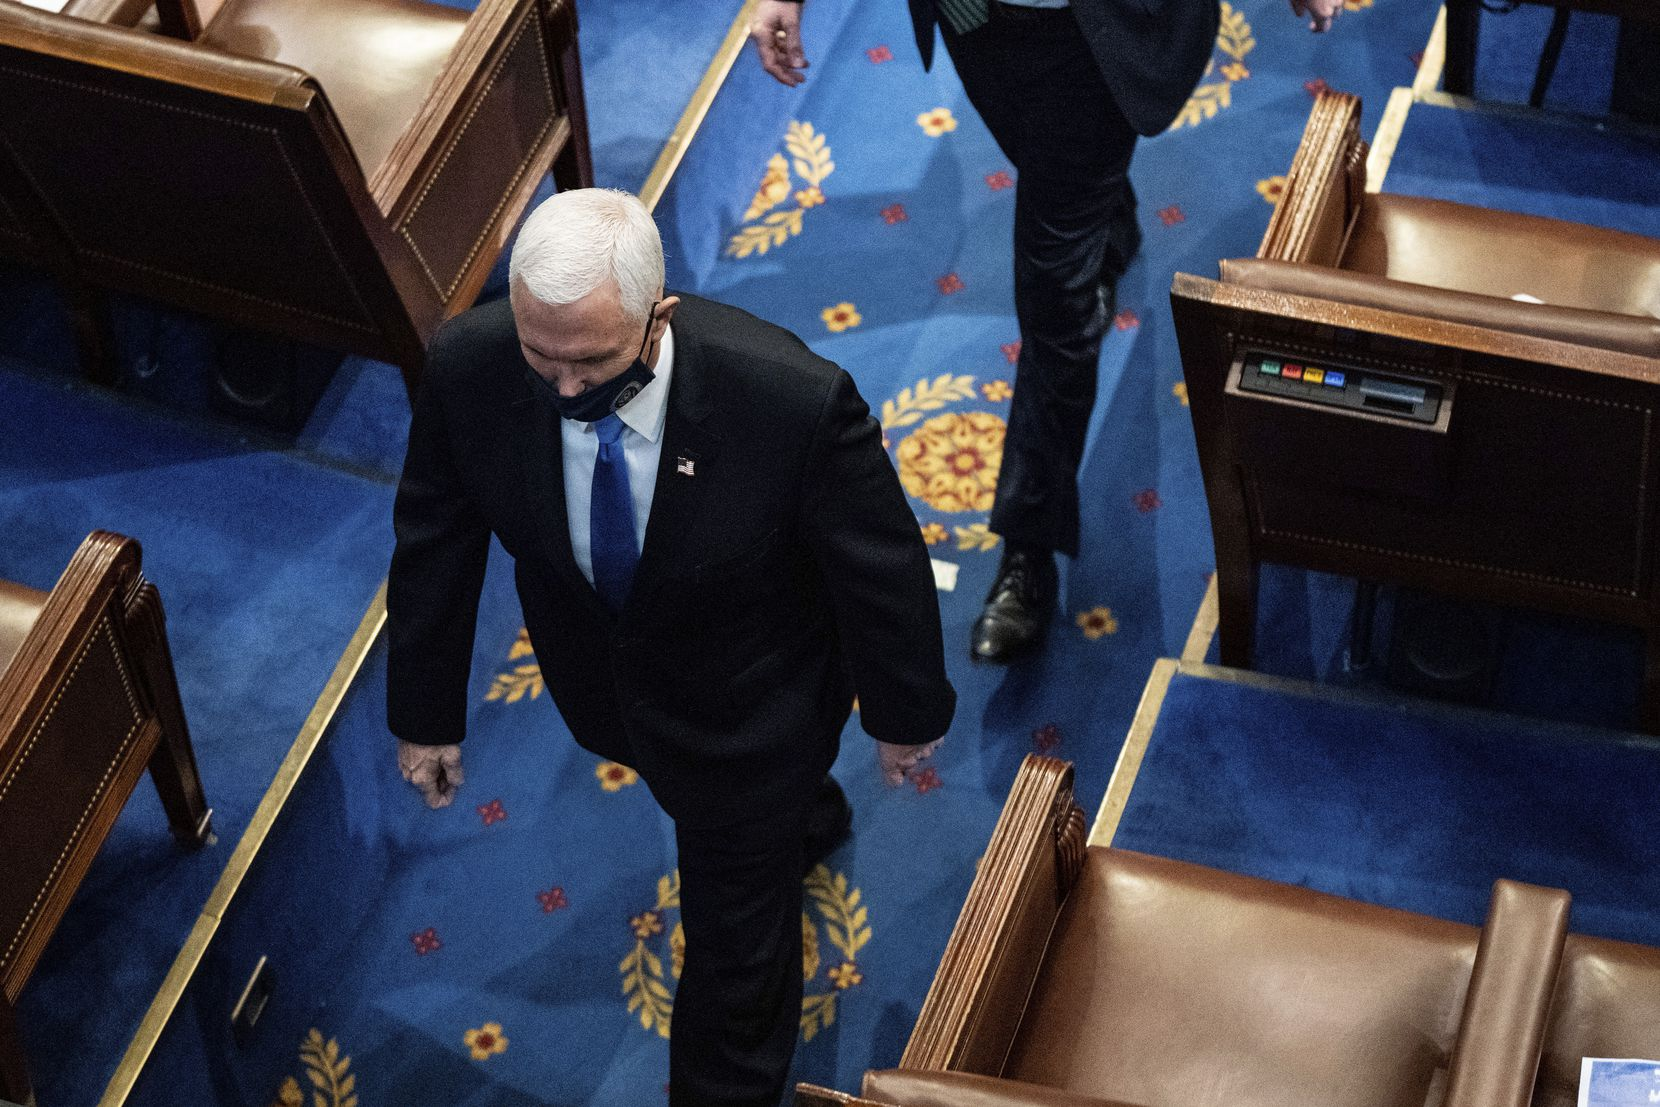 Vice President Mike Pence walks off the House floor as a joint session of the House and Senate convenes to confirm the Electoral College votes cast in November's election, at the Capitol in Washington, Wednesday, Jan. 6, 2021.